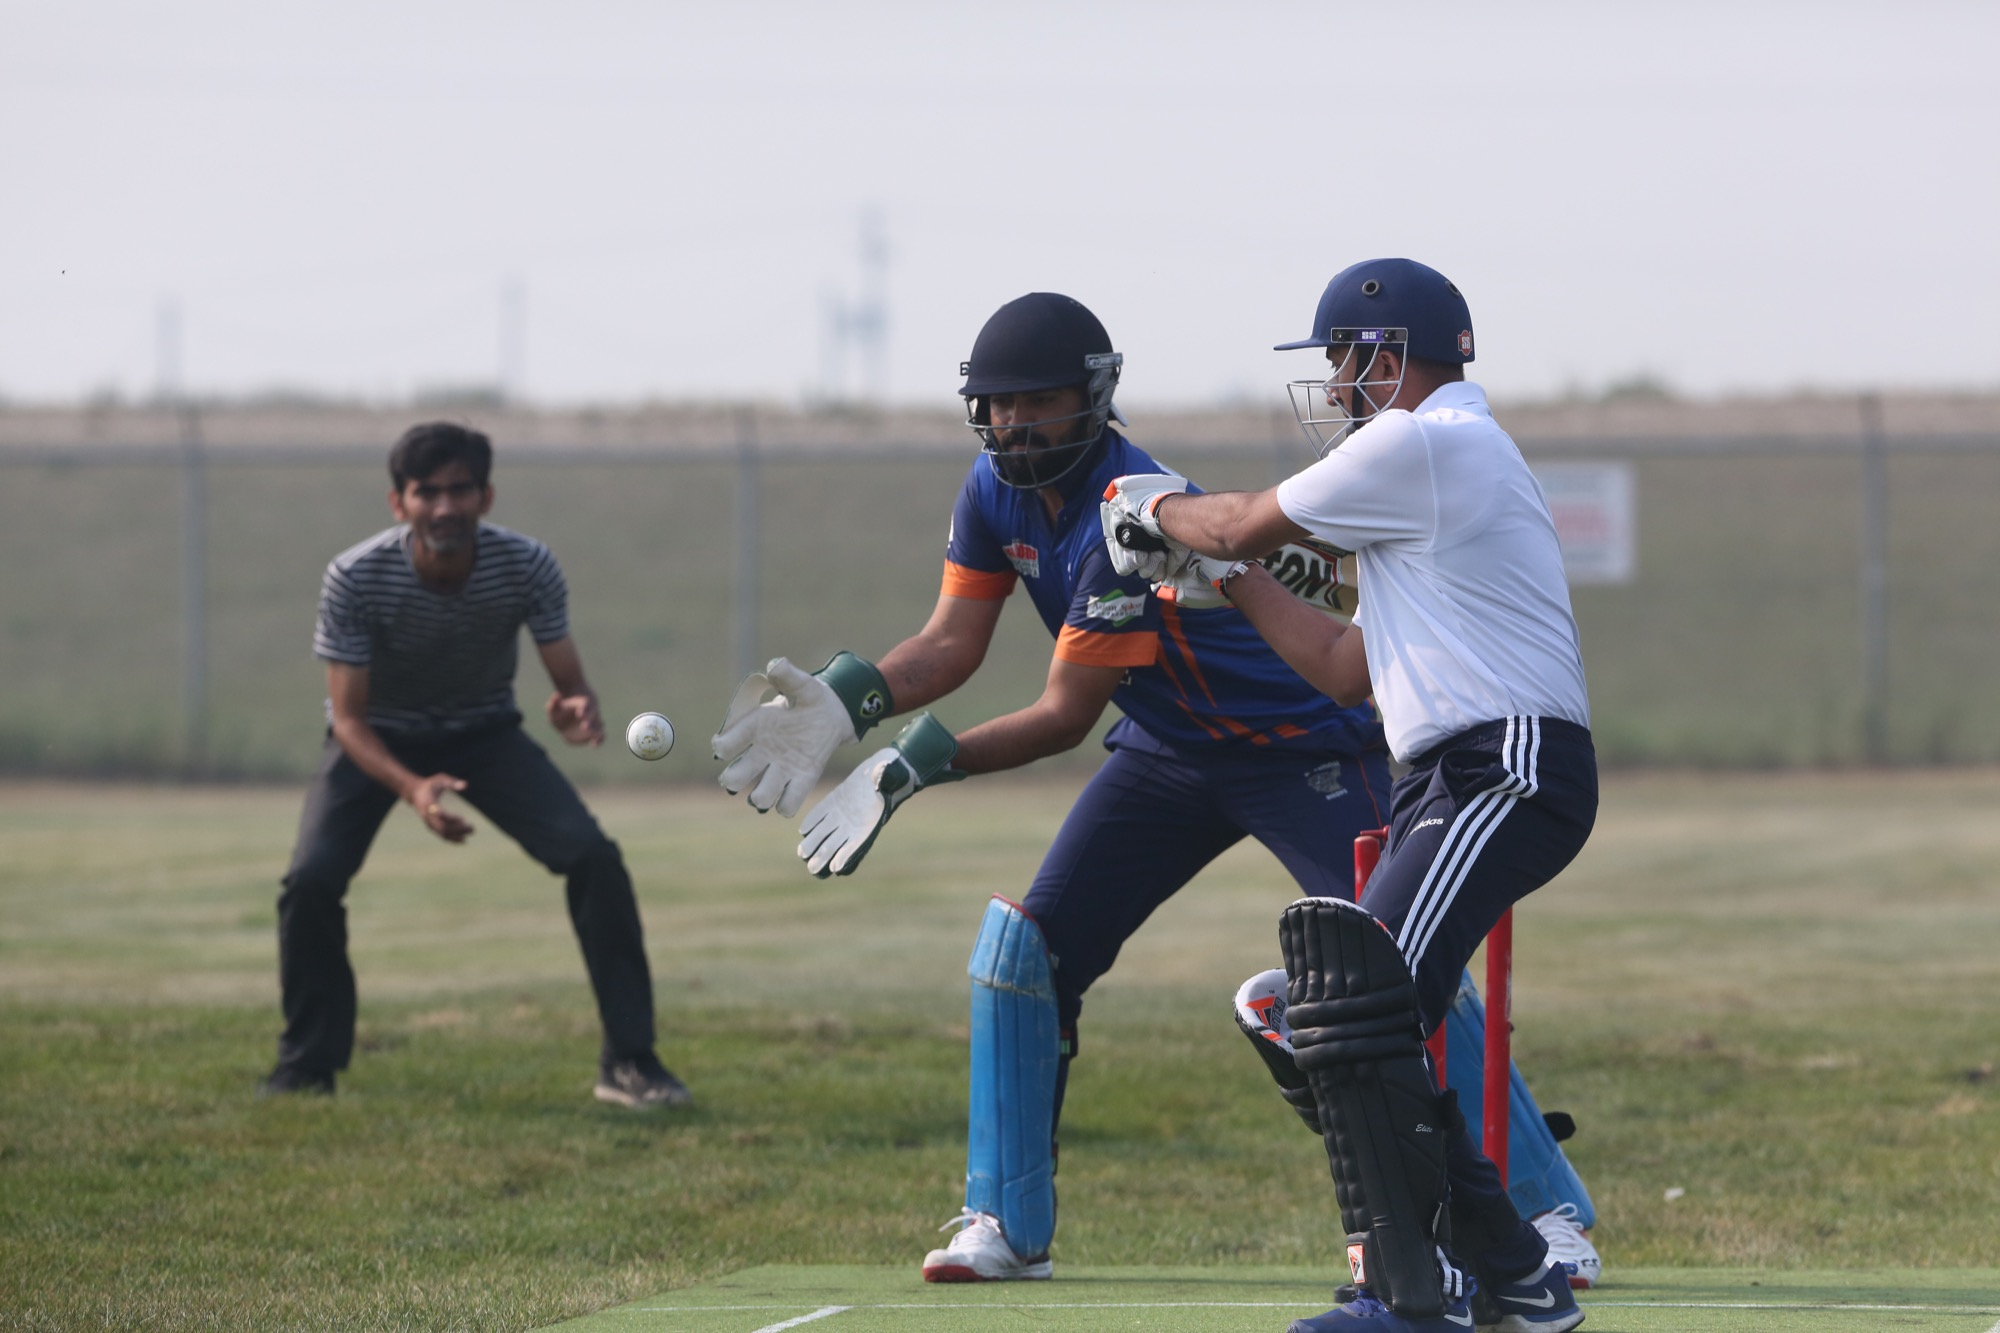 Deep Chaudhary, wicket keeper for the Vice President's 11 exhibition cricket team, reaches for the ball following a pitch and an outside bounce from the bowler on Saturday morning. The match between the President's 11 and the Vice President's 11 marked the inaugural game at the new J&G Homes Cricket Field, which was completed on July 25.